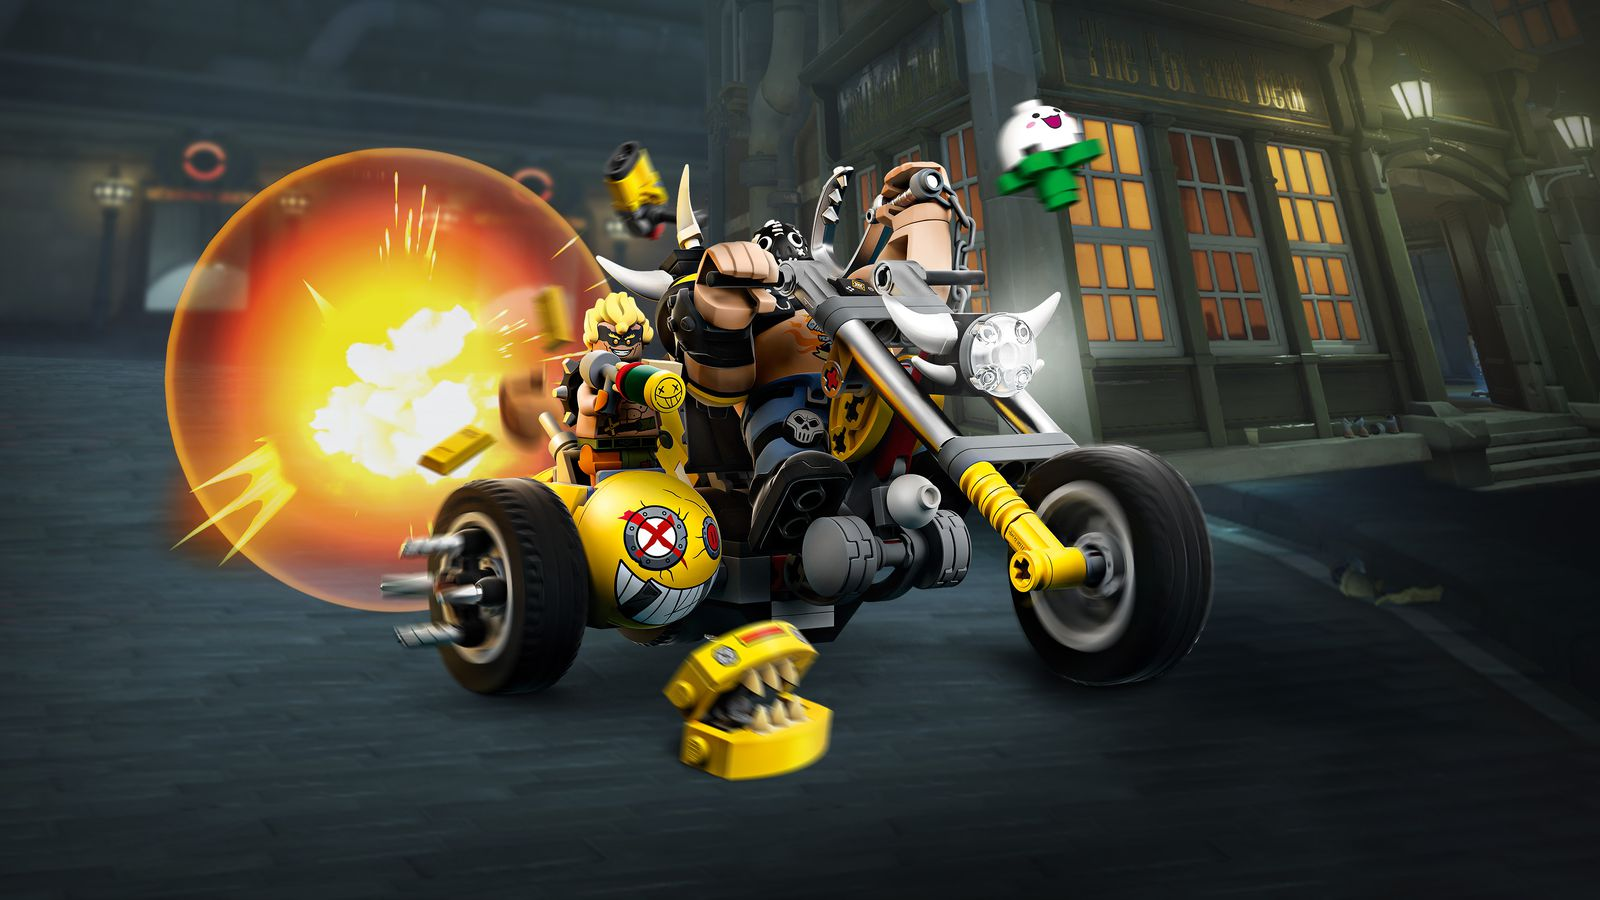 Lego versions of Overwatch's Junkrat and Roadhog riding a Lego motorcycle